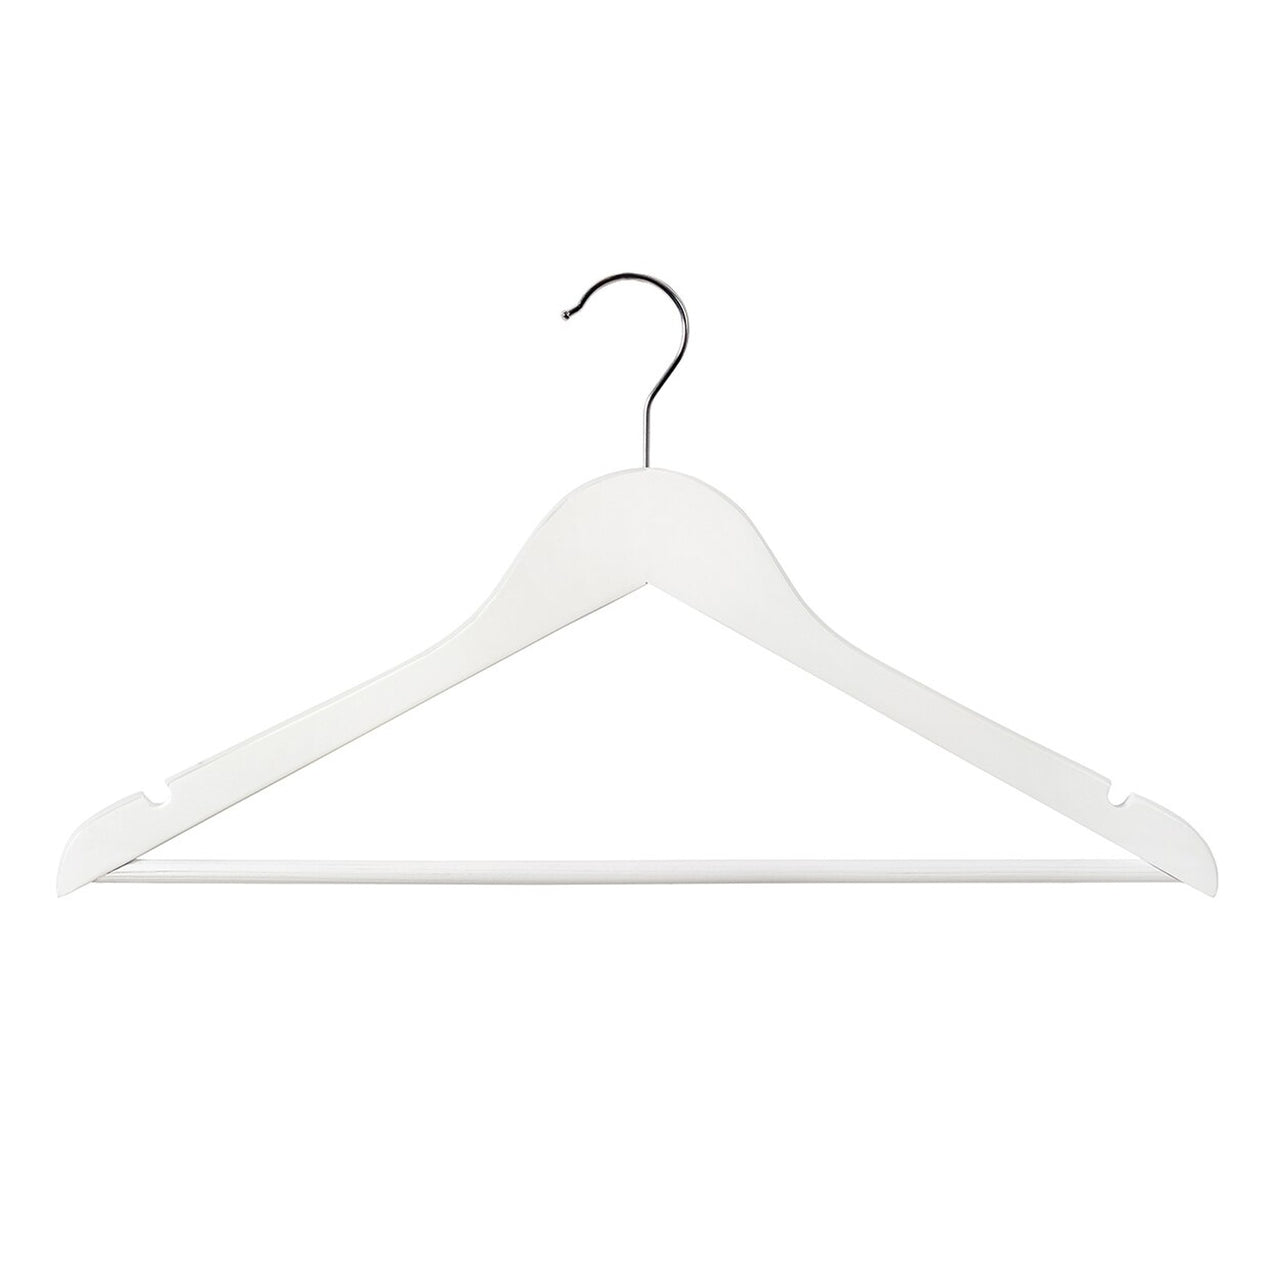 Wooden hanger slimline flat with notches & rail 440Wx10mm Thick (Box of100) H2640WH-100